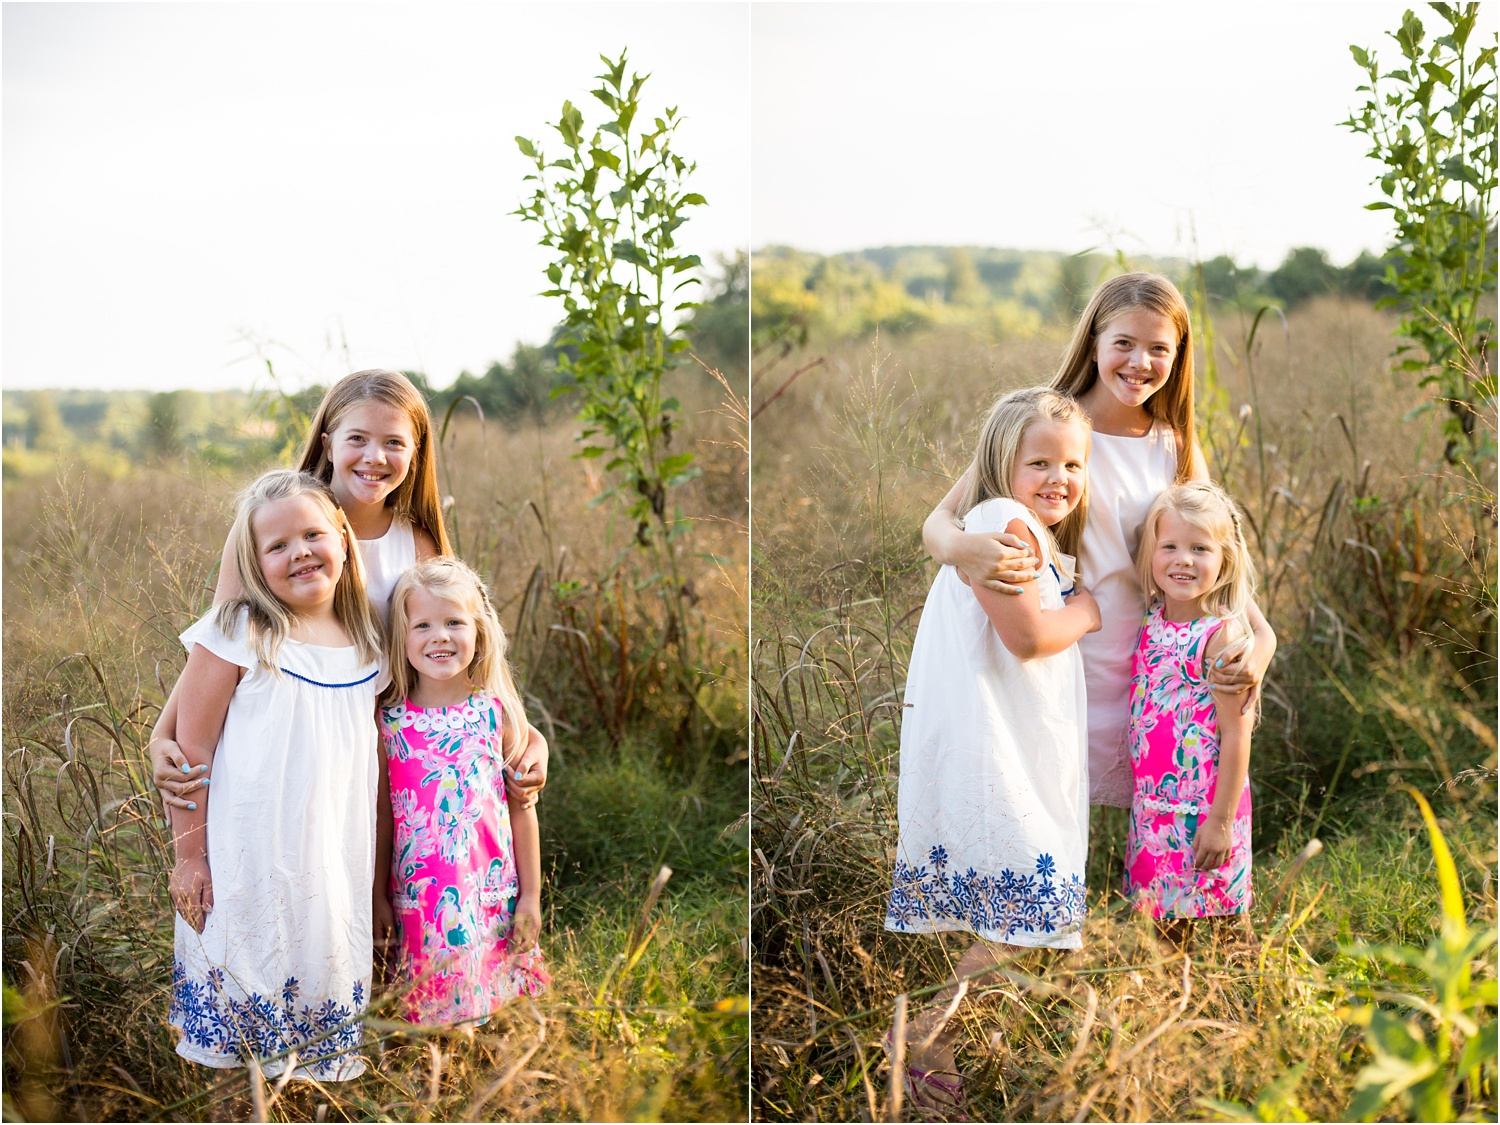 Adams_Sisters_Lynchburg_Va_Family_Photography_0009.jpg